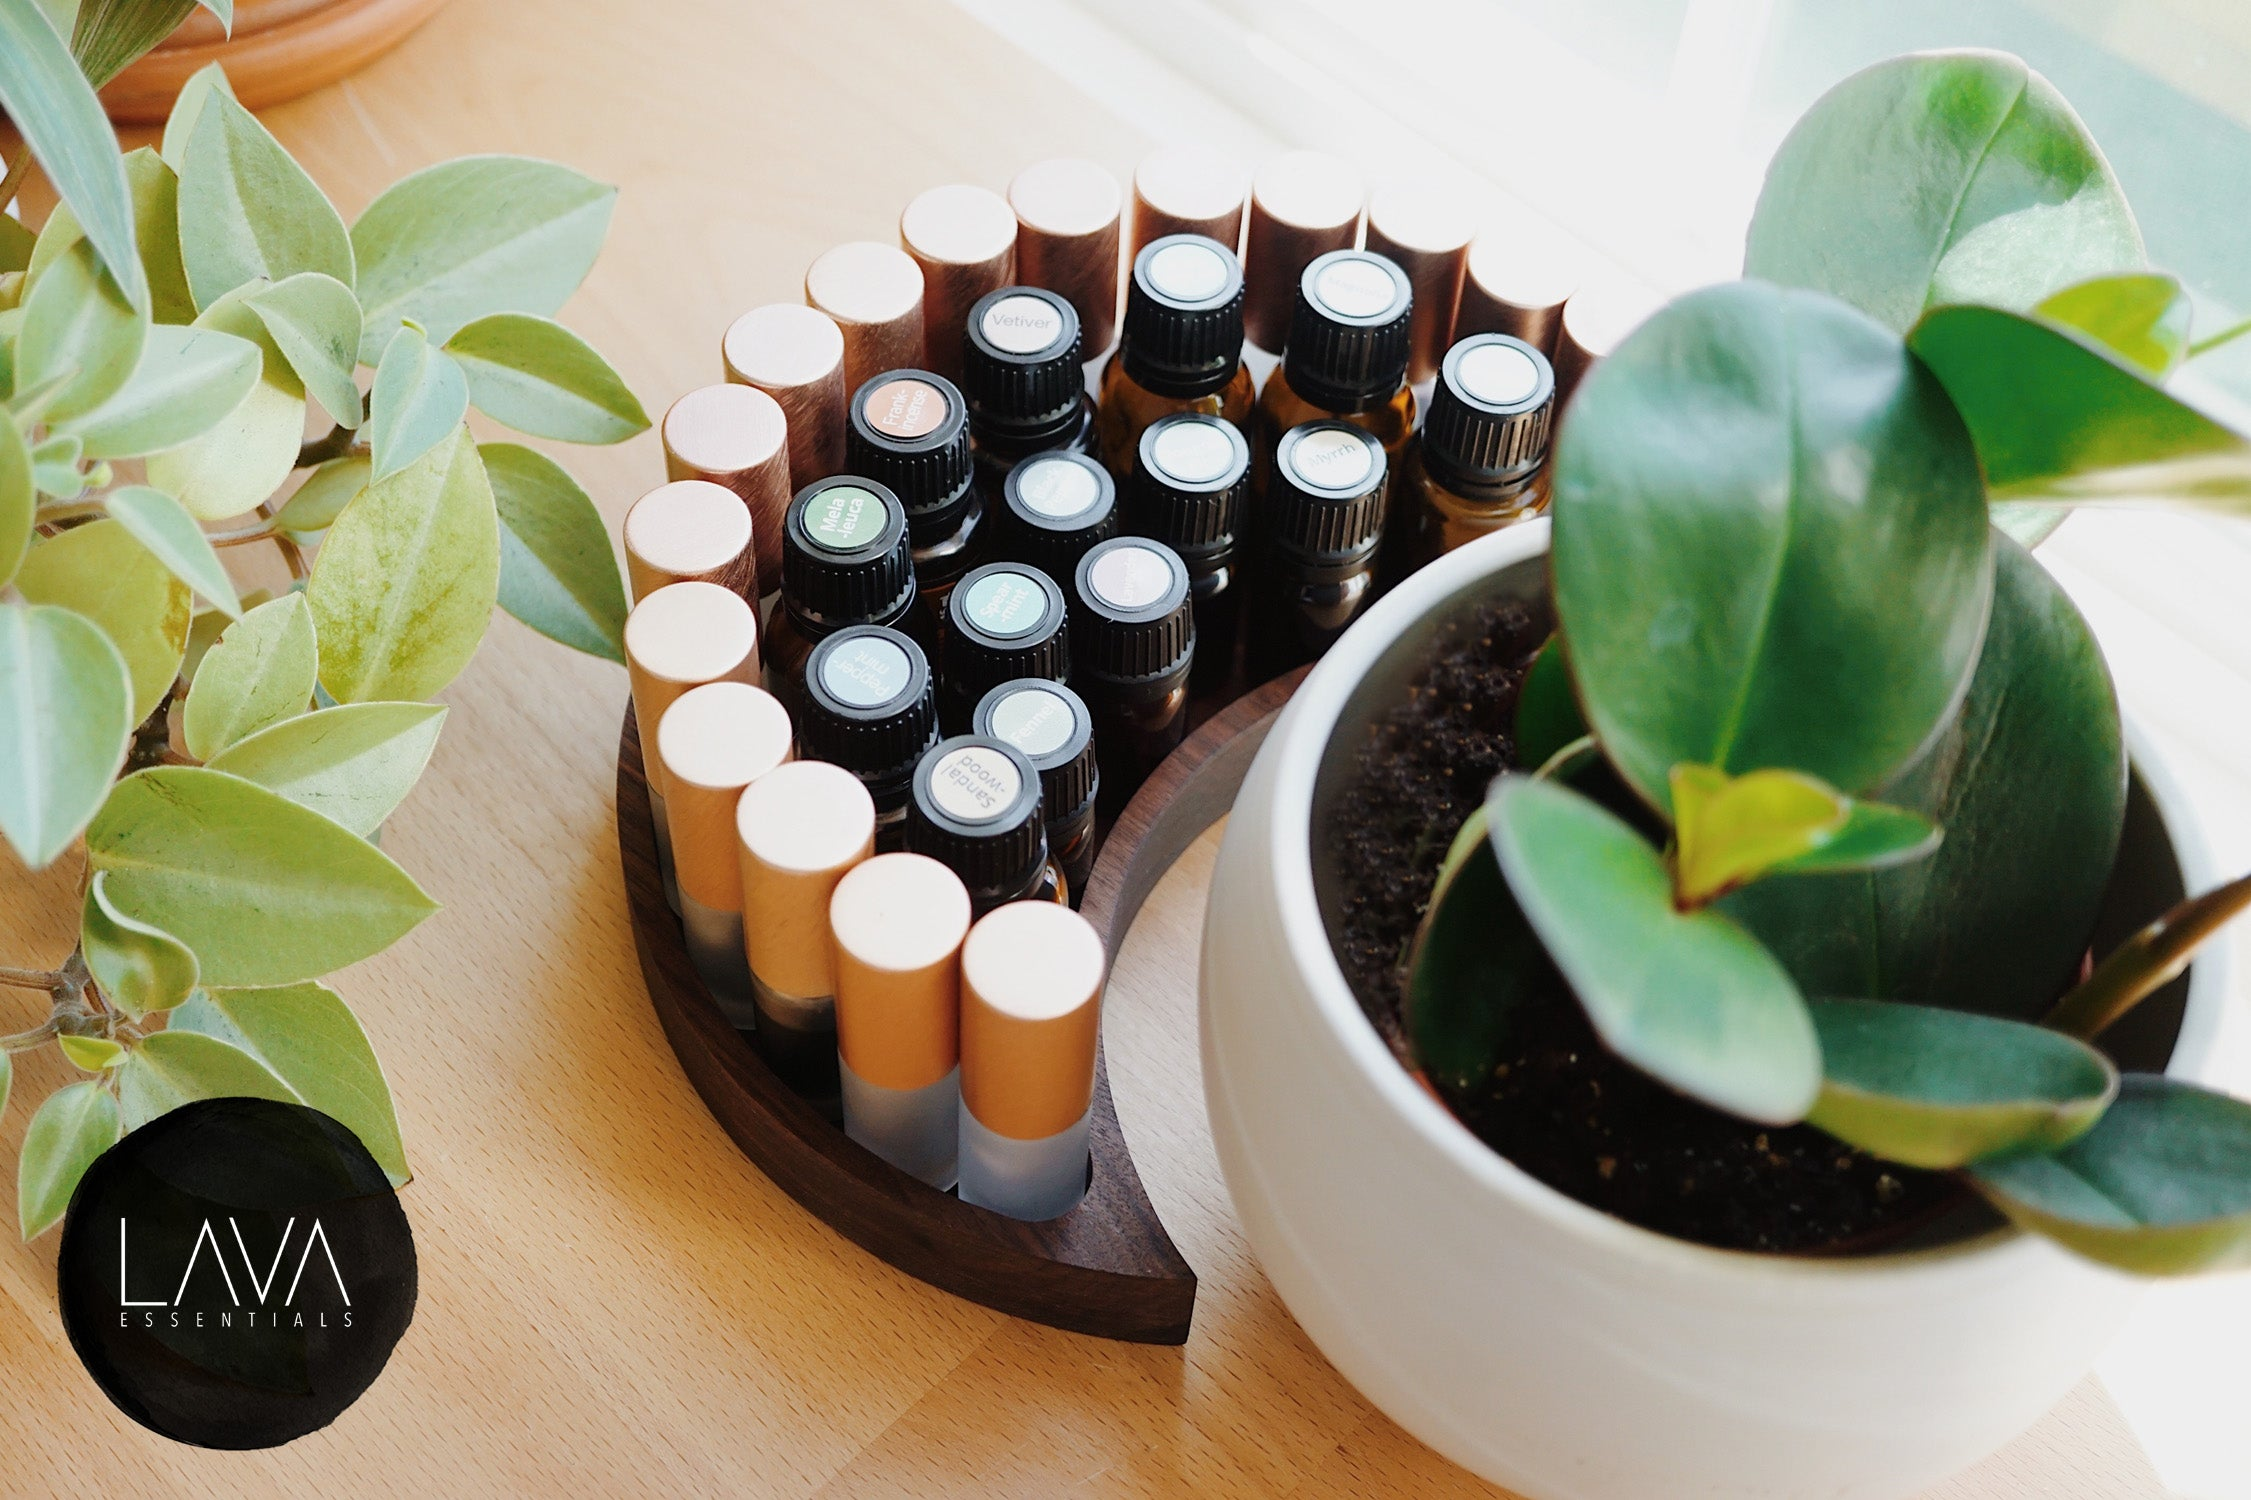 holds roller bottles, essential oil storage, big oil bottle holders fits a lot of bottles